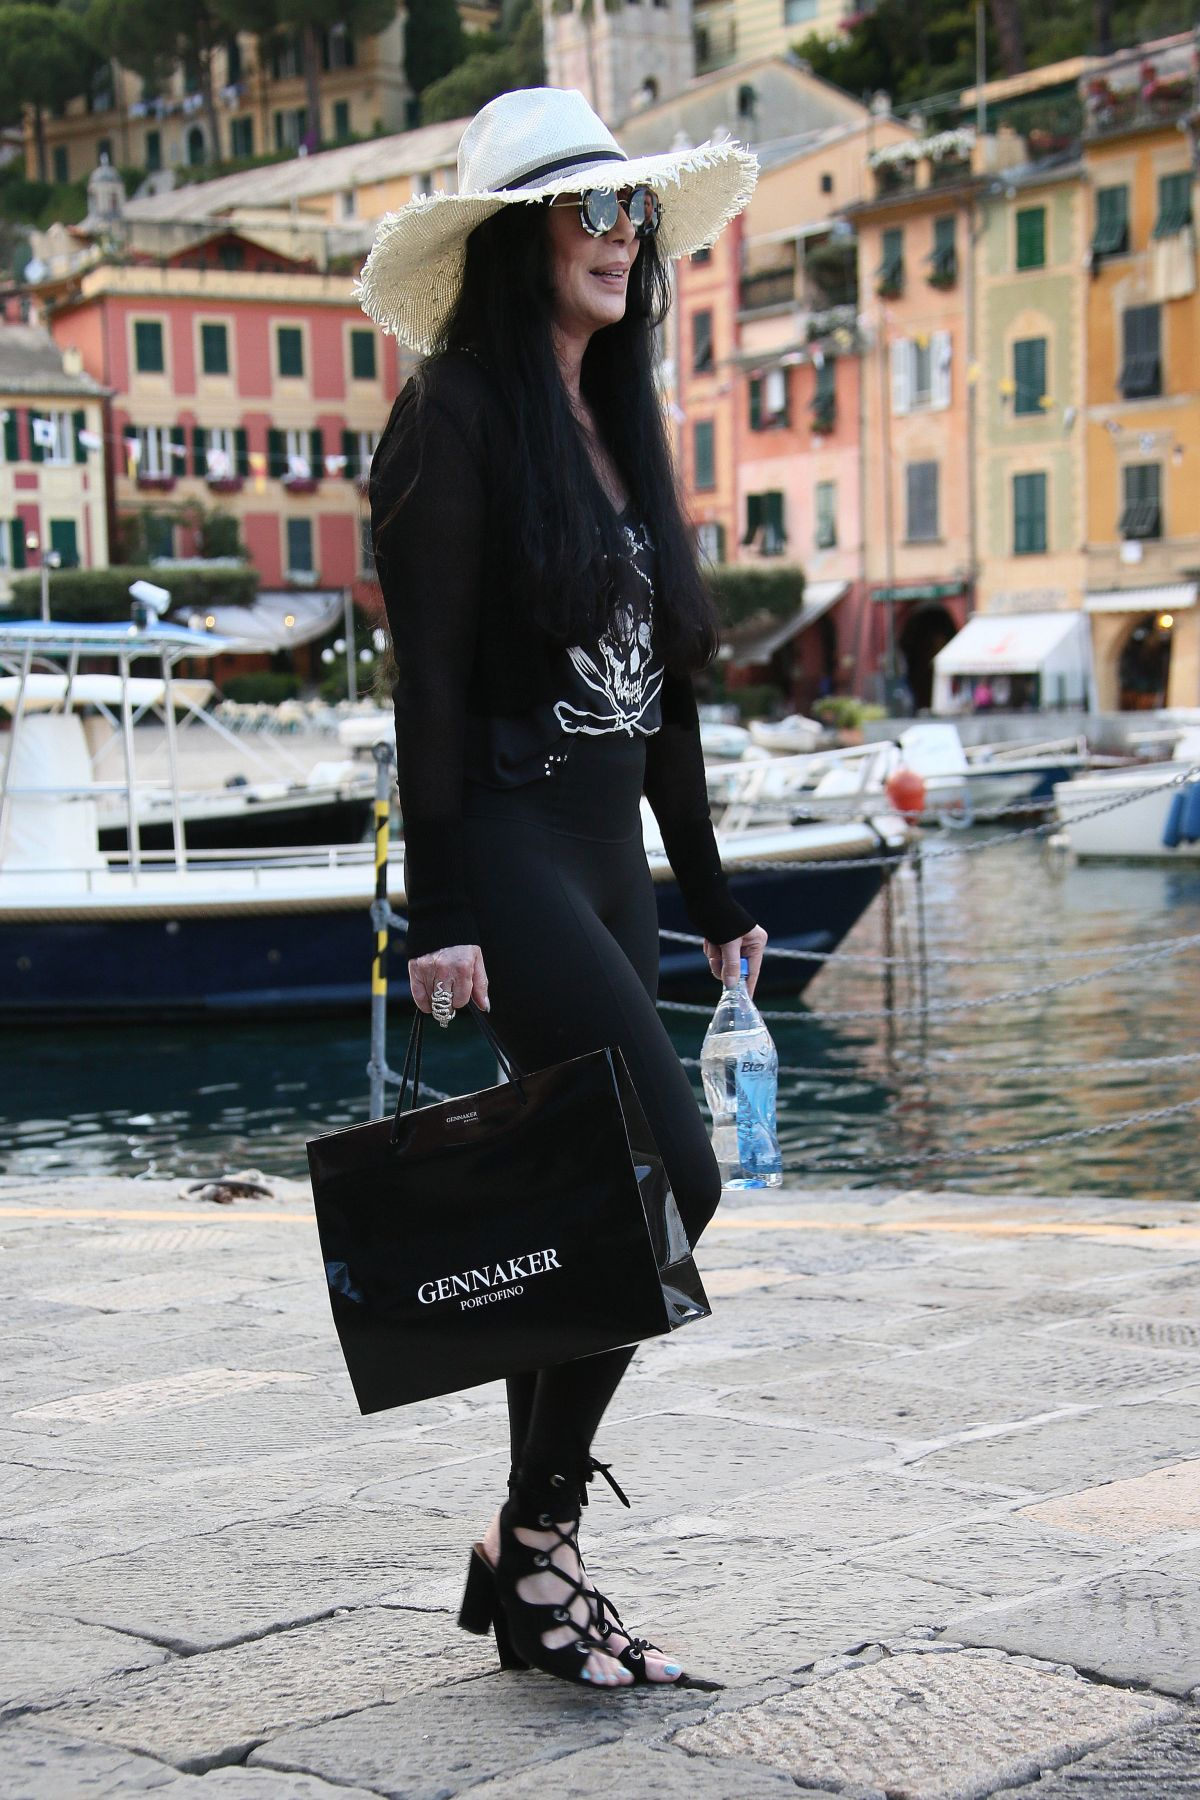 cher-out-with-her-friends-in-portofino-06-21-2016_6.jpg